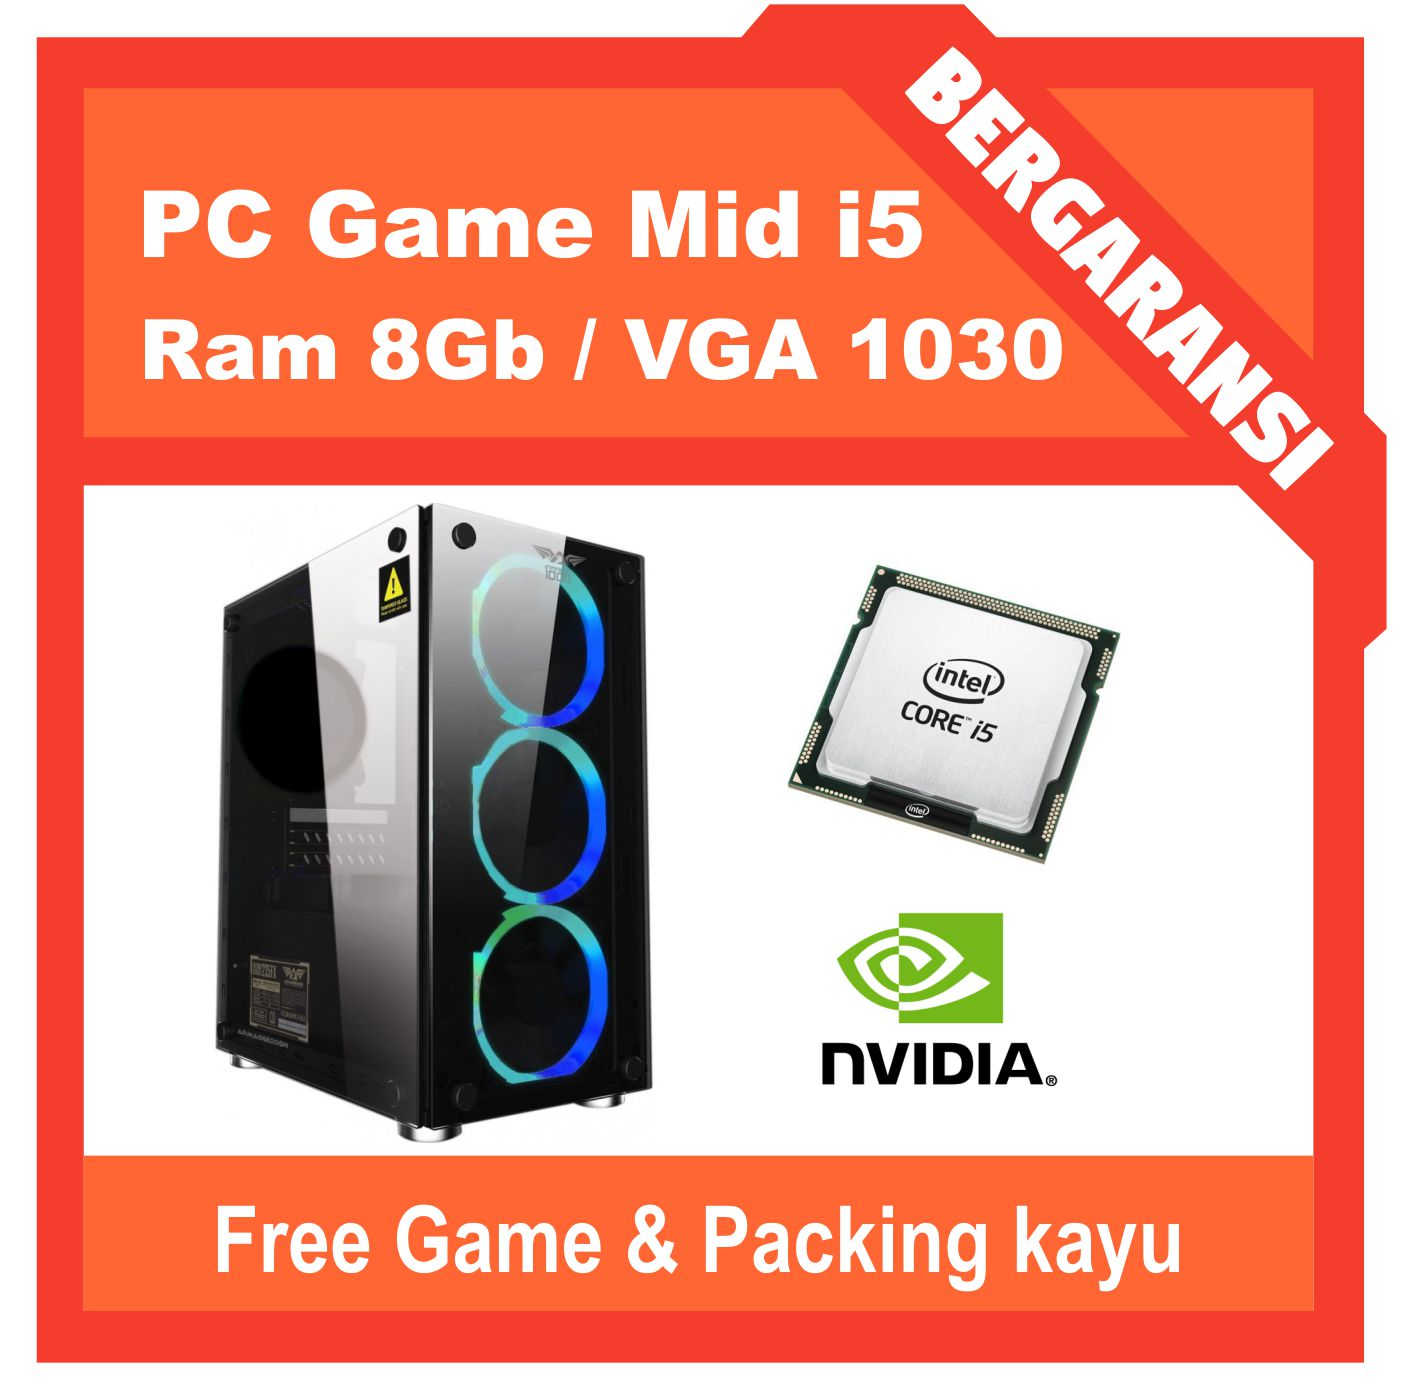 https://www.lazada.co.id/products/pc-game-intel-core-i5-650-ram-8gb-vga-2gb-ddr5-i891404126-s1315608696.html